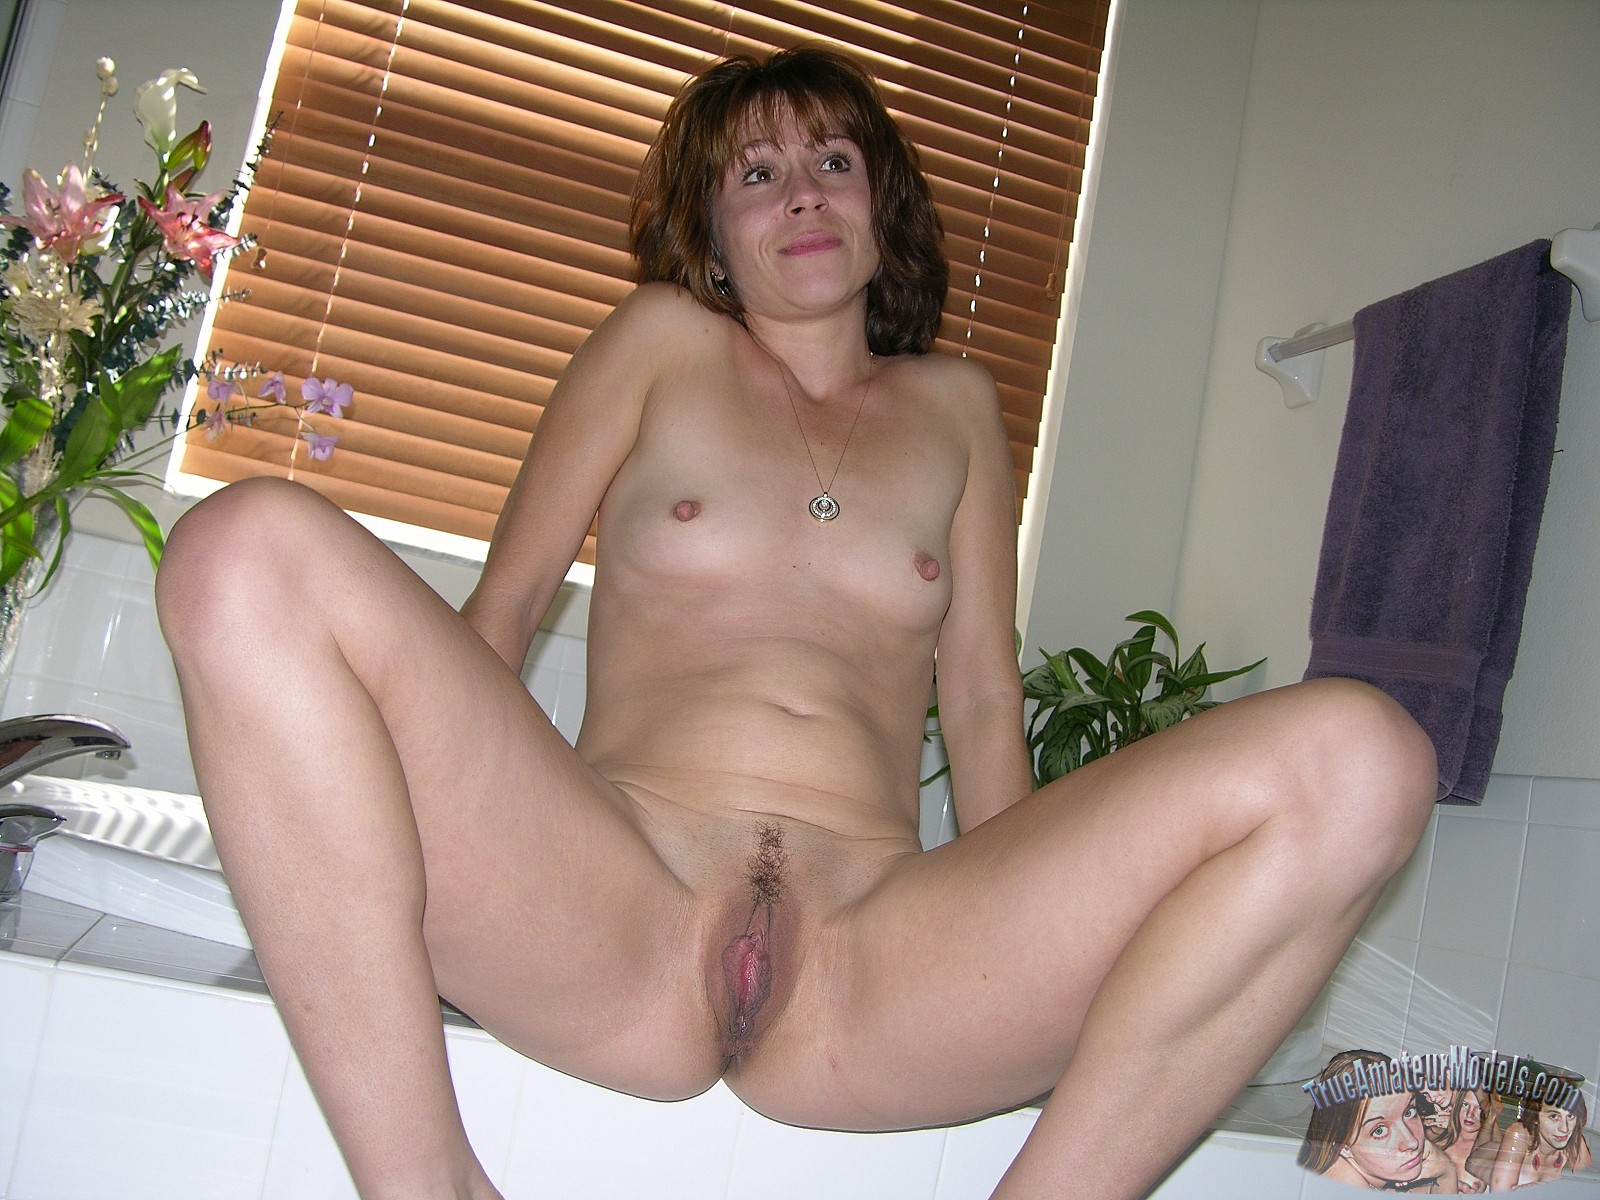 Milf Amature Naked